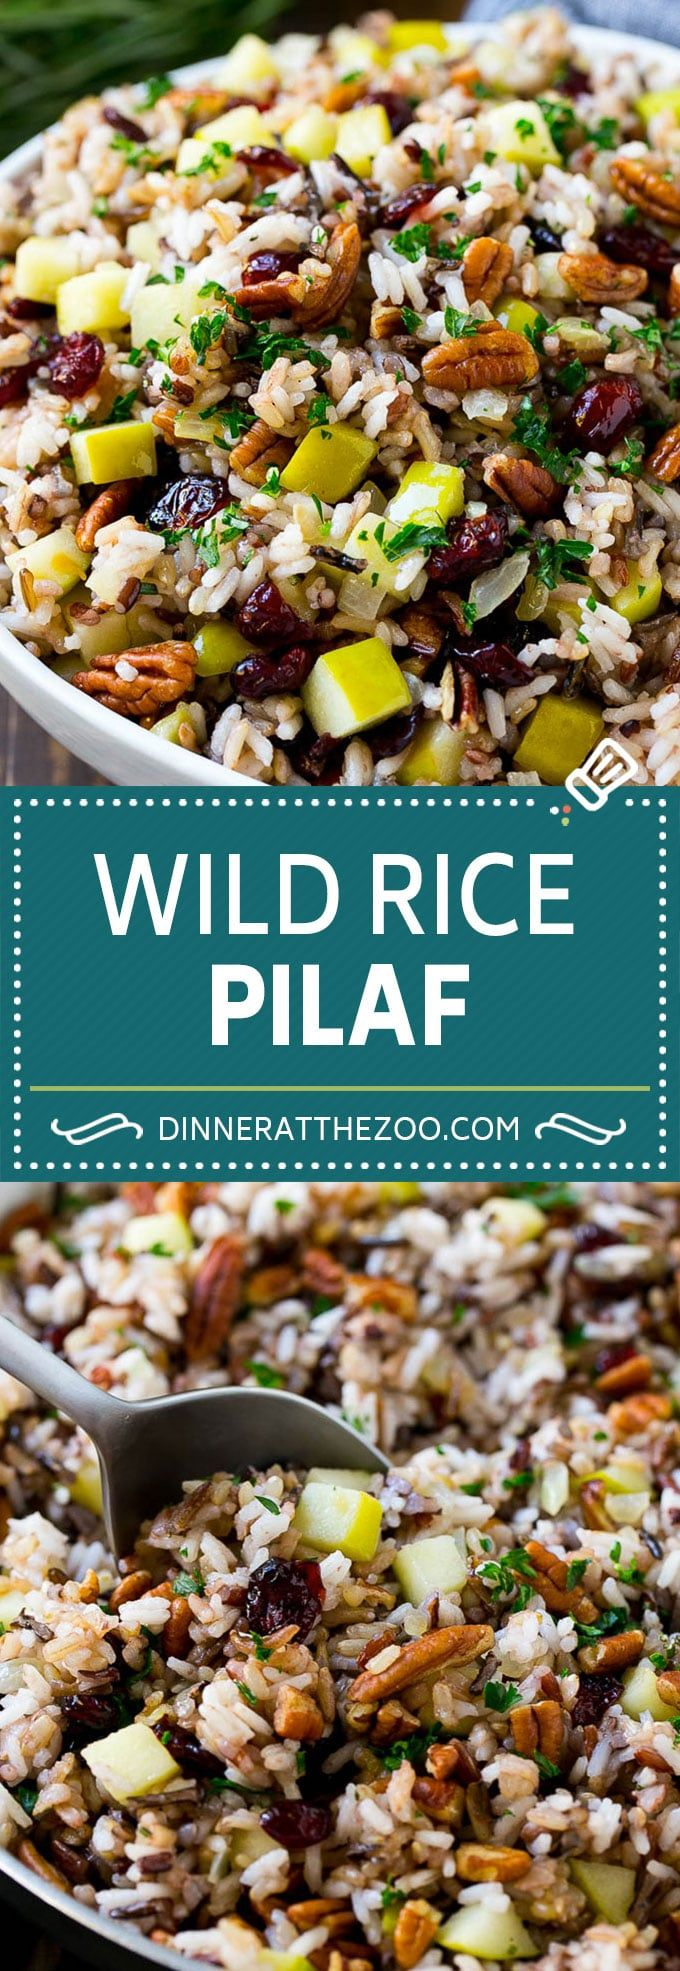 Rice Pilaf with Cranberries and Pecans - Dinner at the Zoo